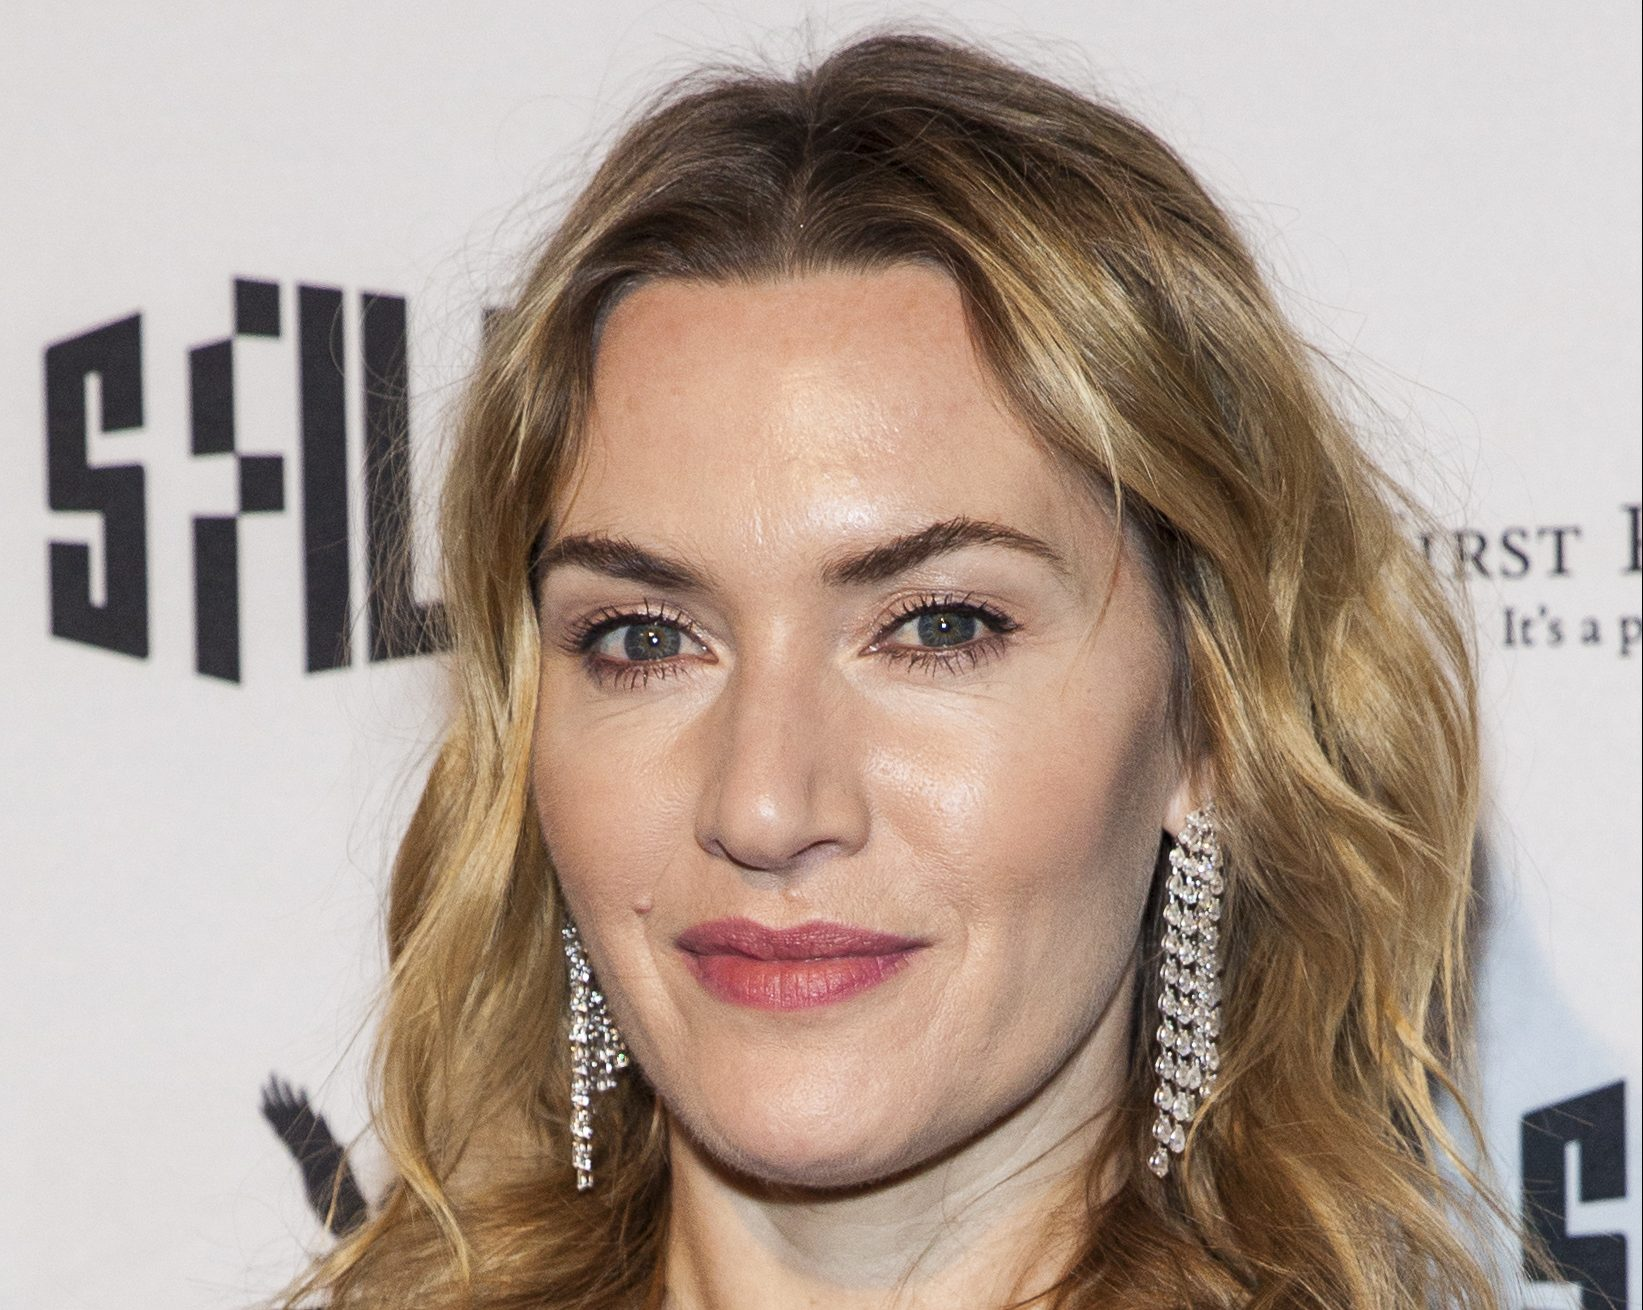 Kate Winslet reveals her feelings during the lockdown and how much she misses festivals and cinema